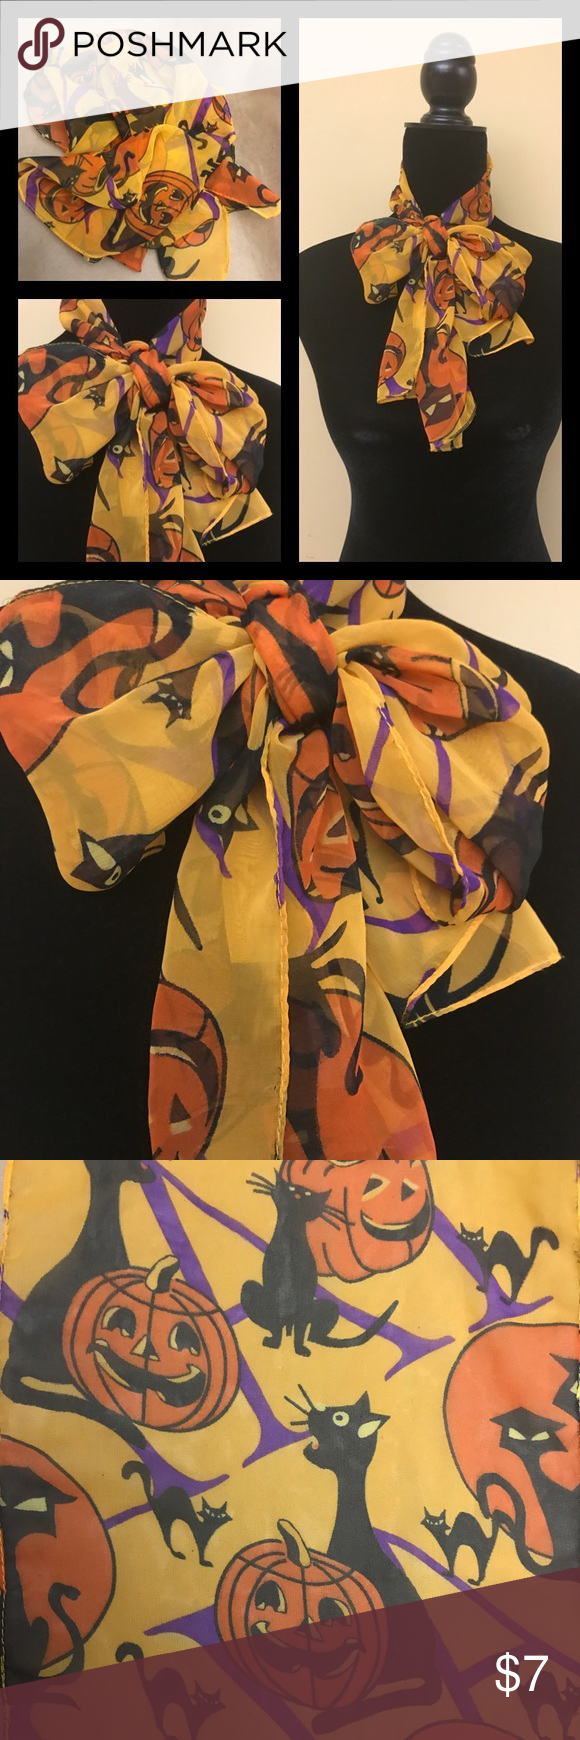 Halloween Themed Hair Scarf Scarf Hello, for your